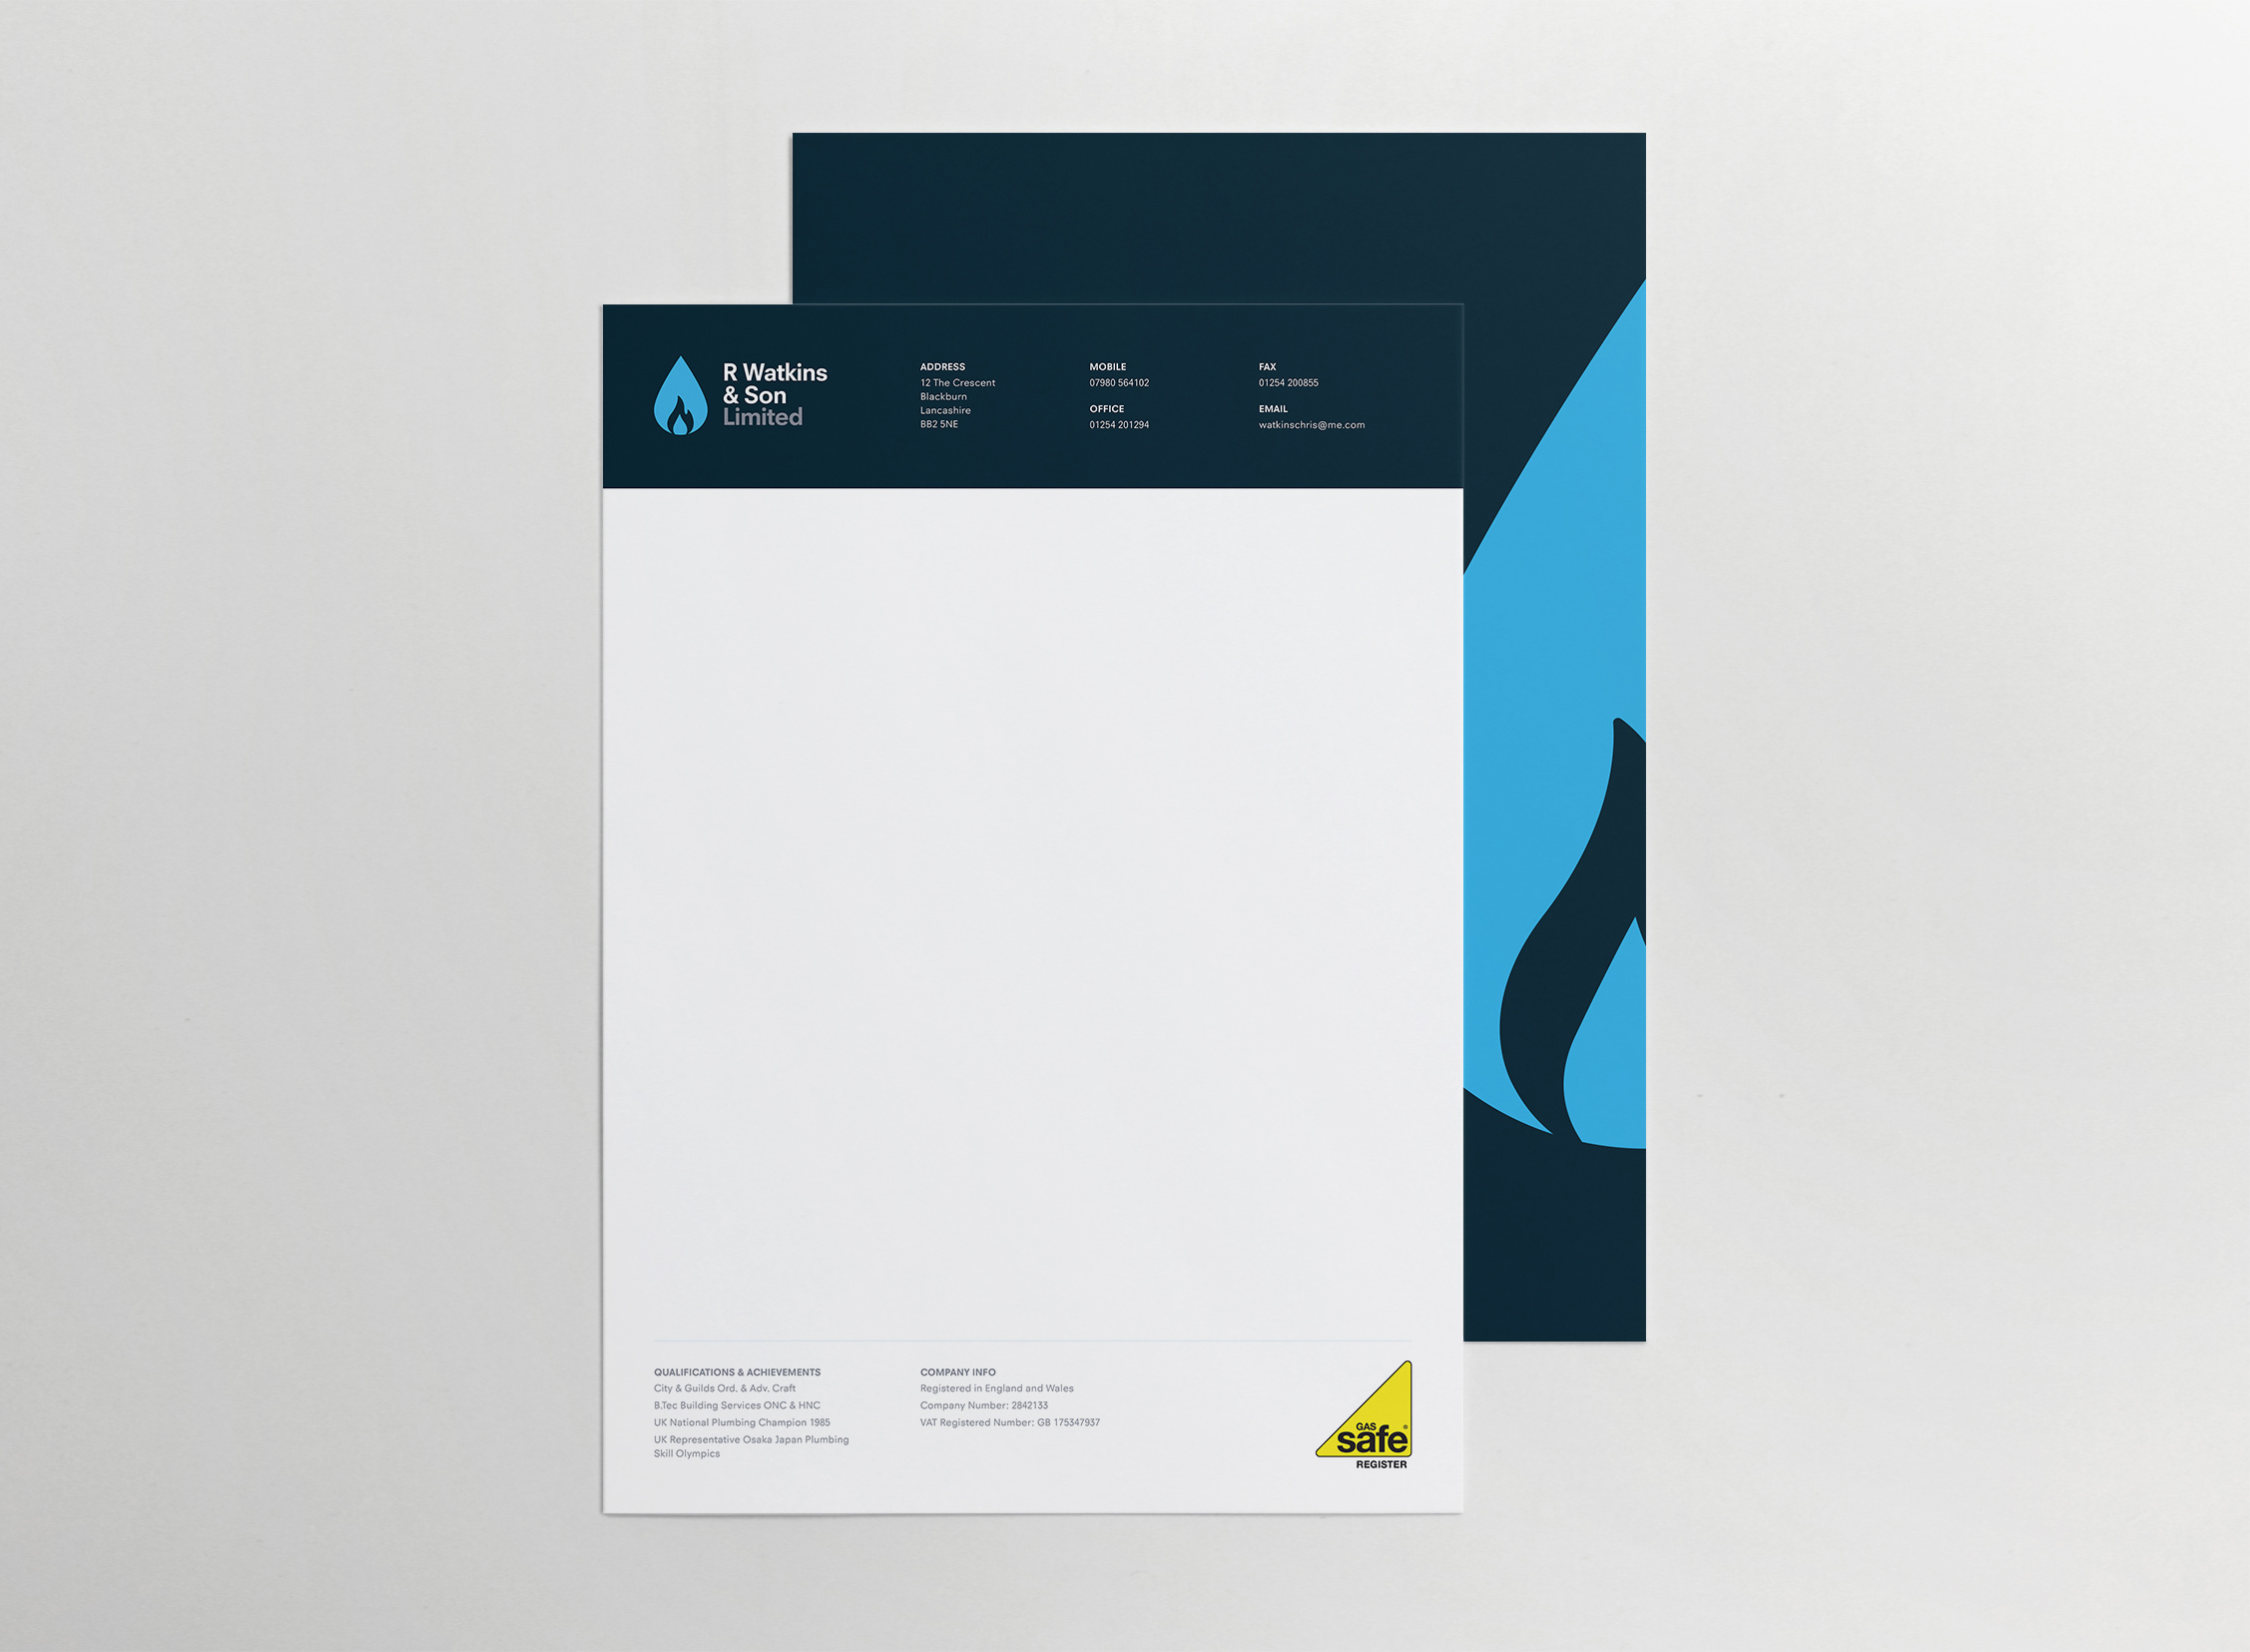 Letterhead design for established plumbing and heating business, R Watkins & Son Limited